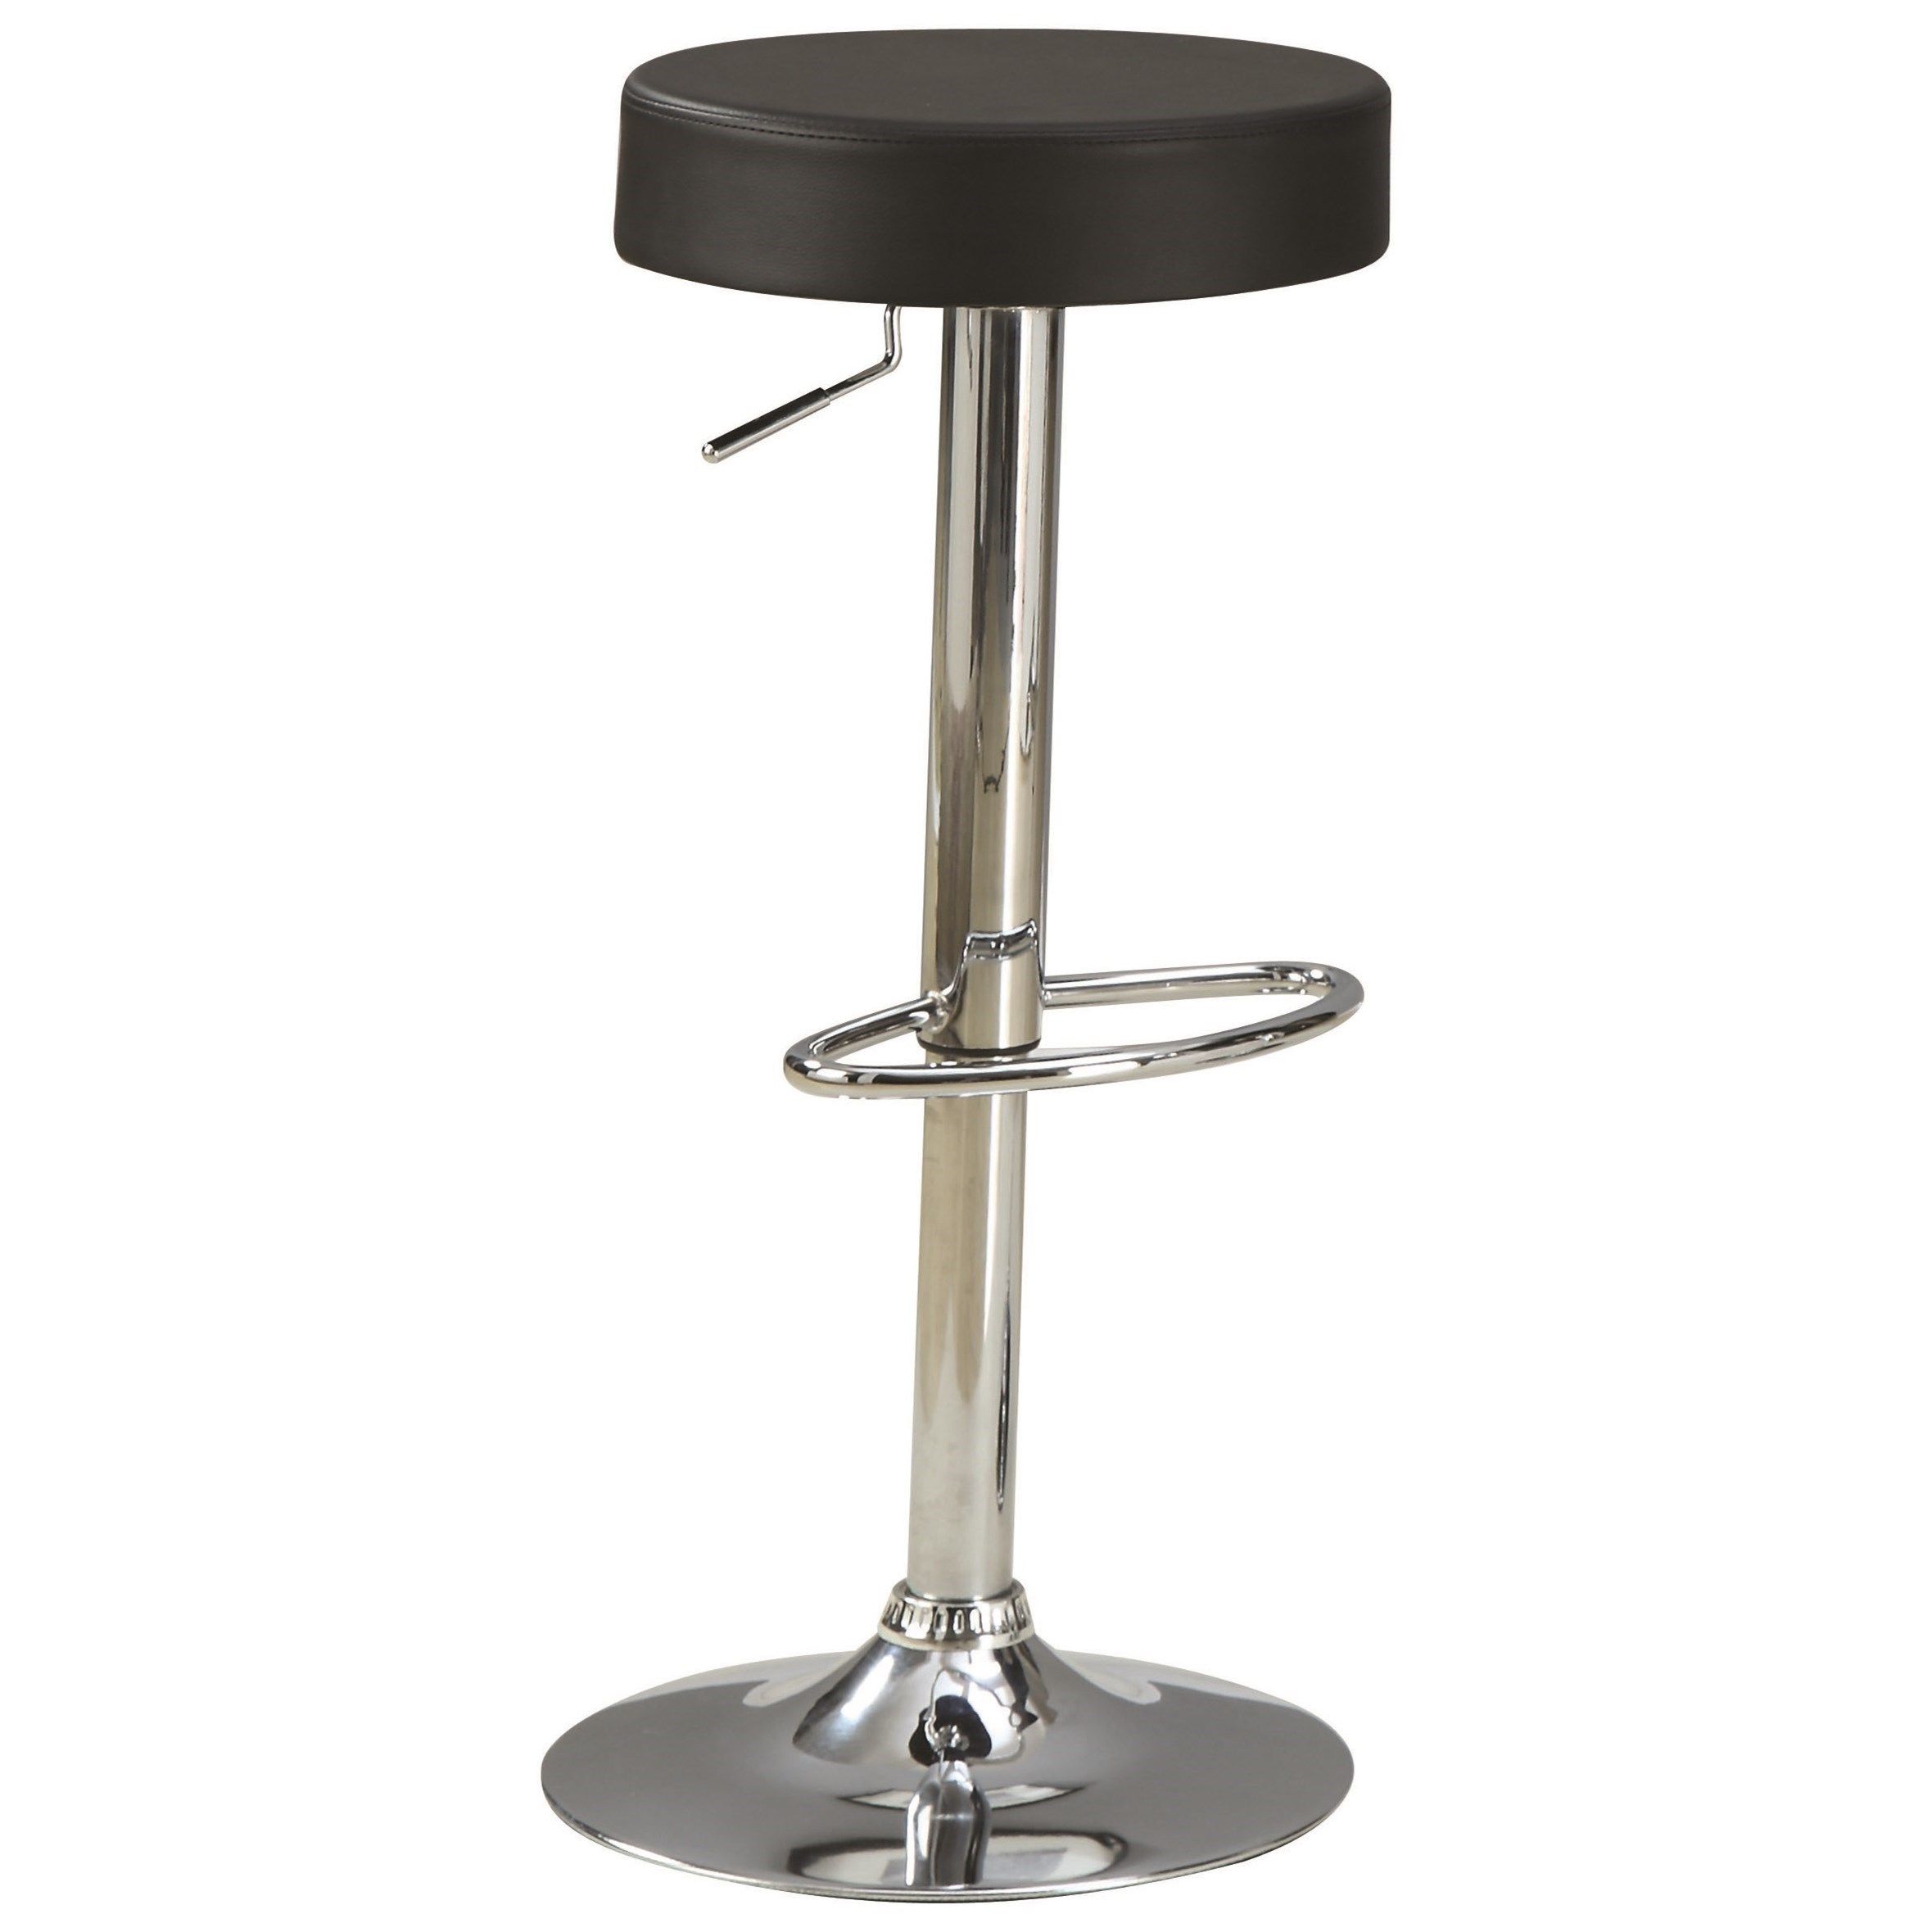 Incroyable Coaster Dining Chairs And Bar Stools29 ...